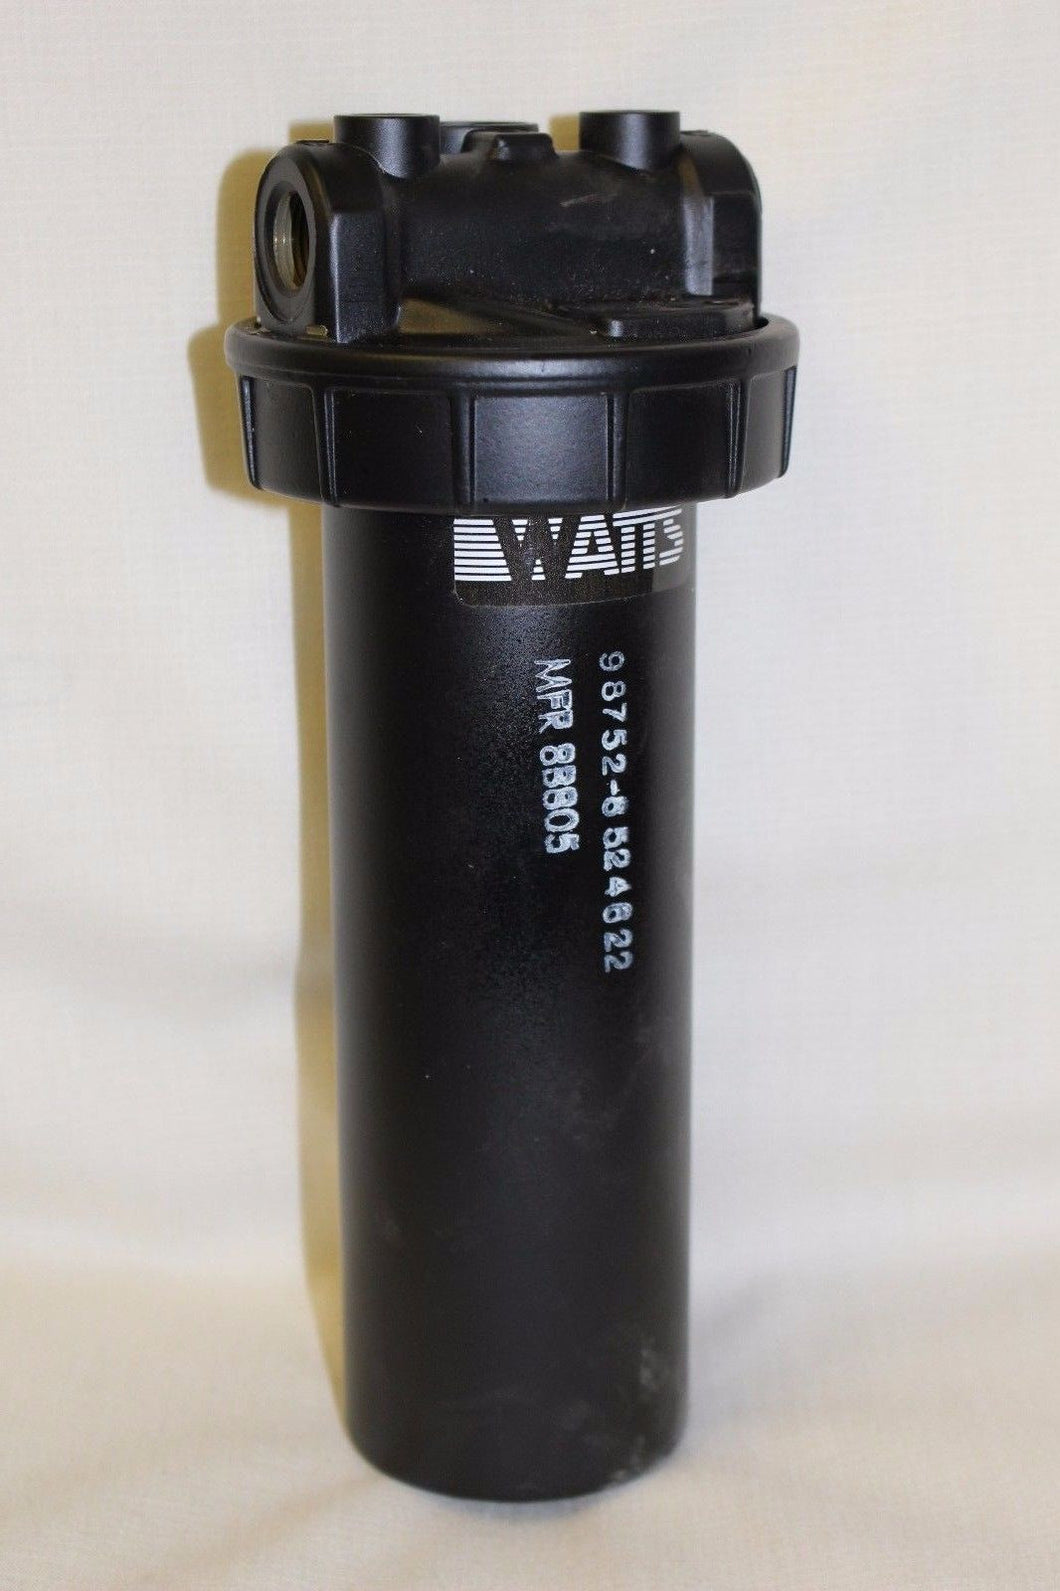 WATTS Fluid Filter, NSN 4330-01-289-4581, P/N 8524622, F701-03E7. New